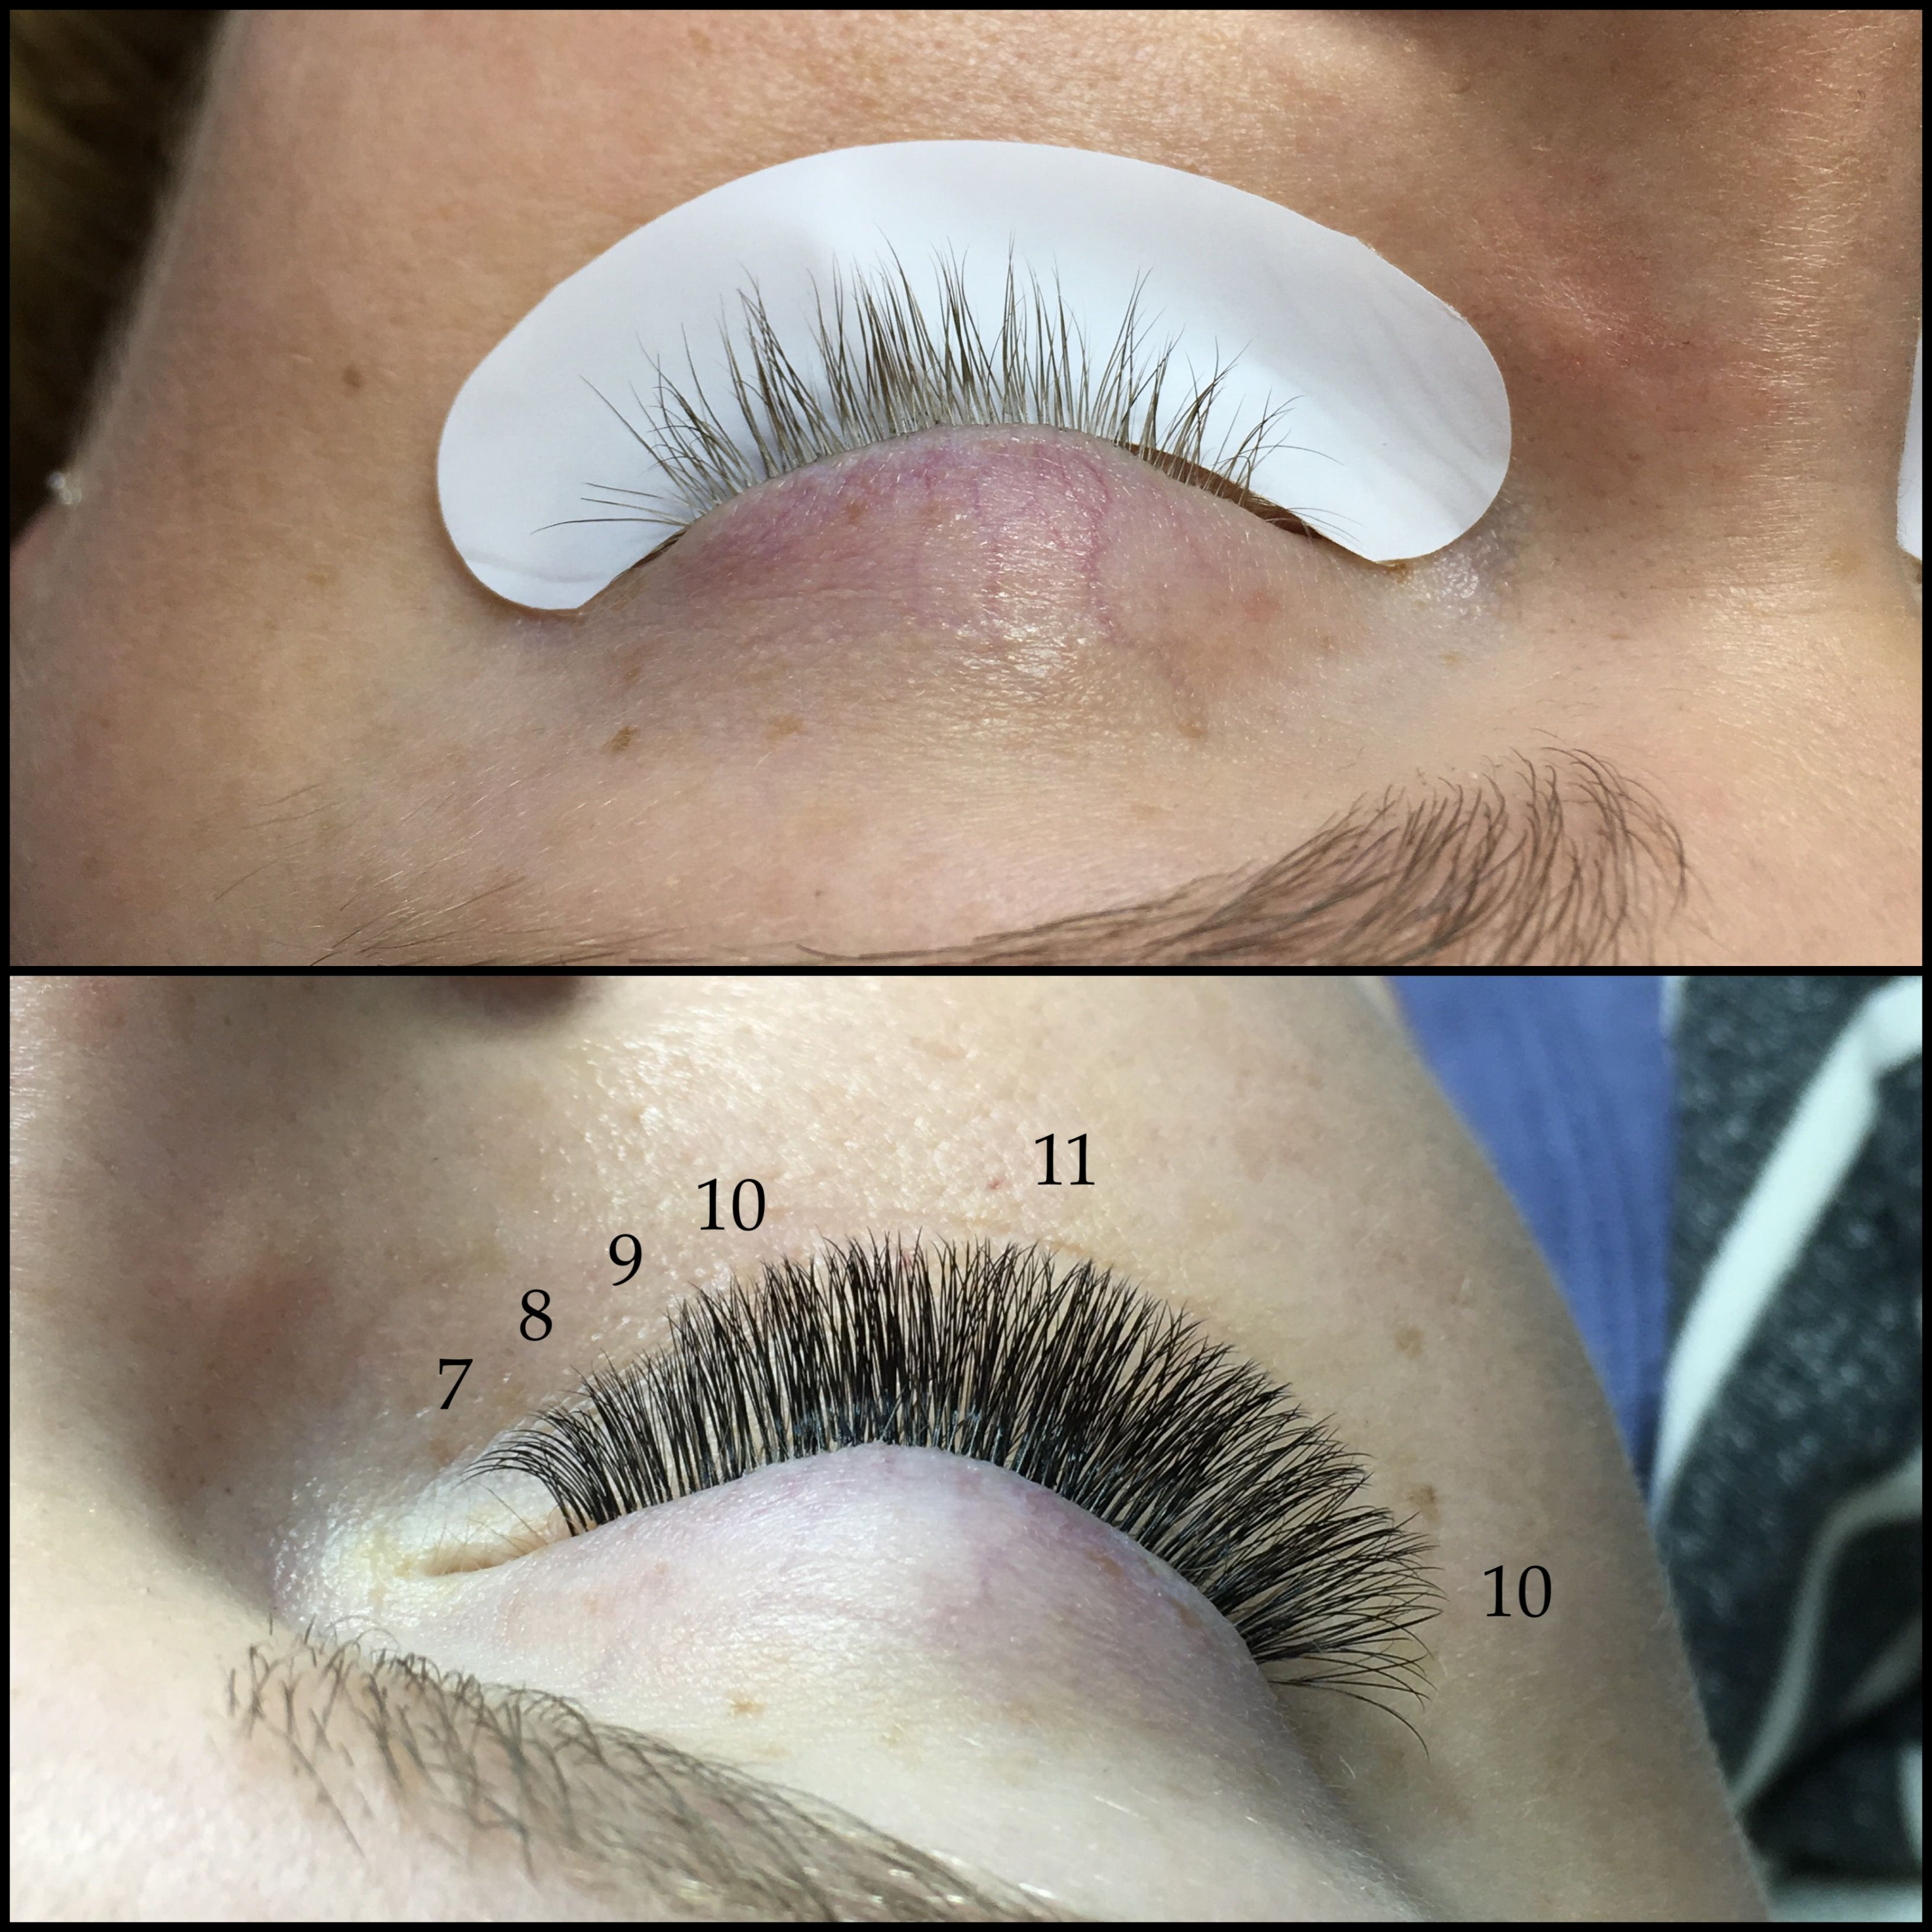 dea726b47b0ff9fc5851b3f8c157e7af - How To Get Semi Permanent Lashes Off At Home